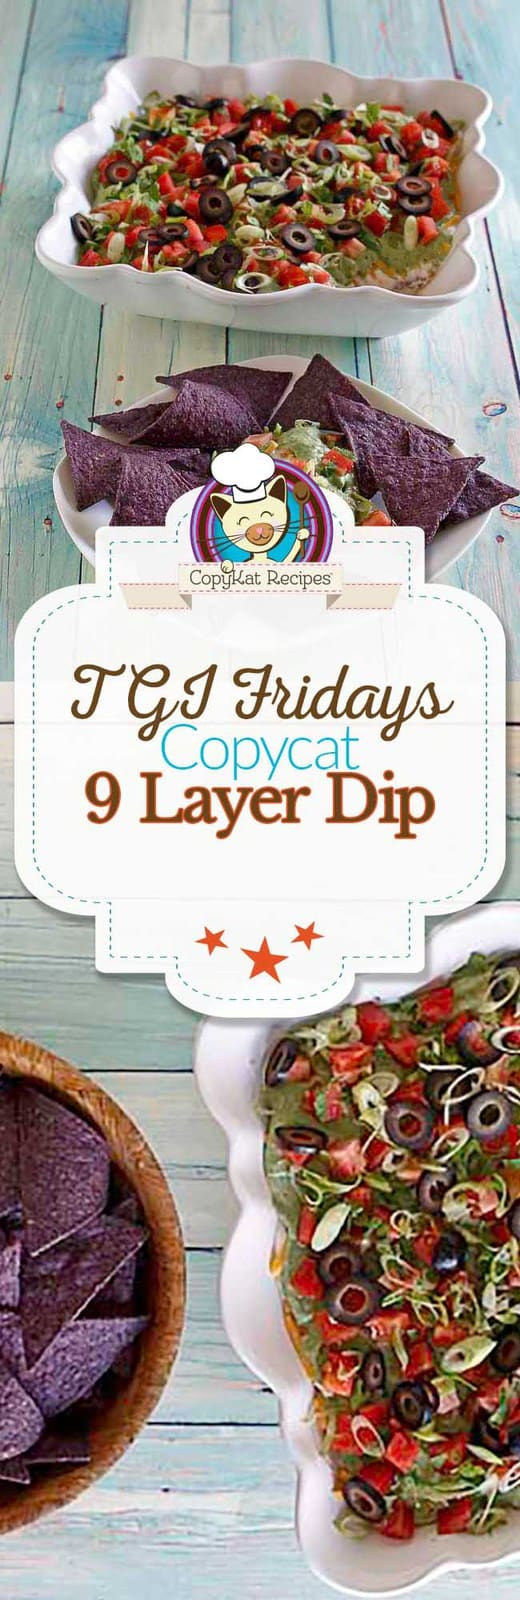 You can recreate the TGI Friday's Nine Layer Dip recipe at home with this easy copycat recipe. It's perfect for your next game night, or to watch your favorite team.